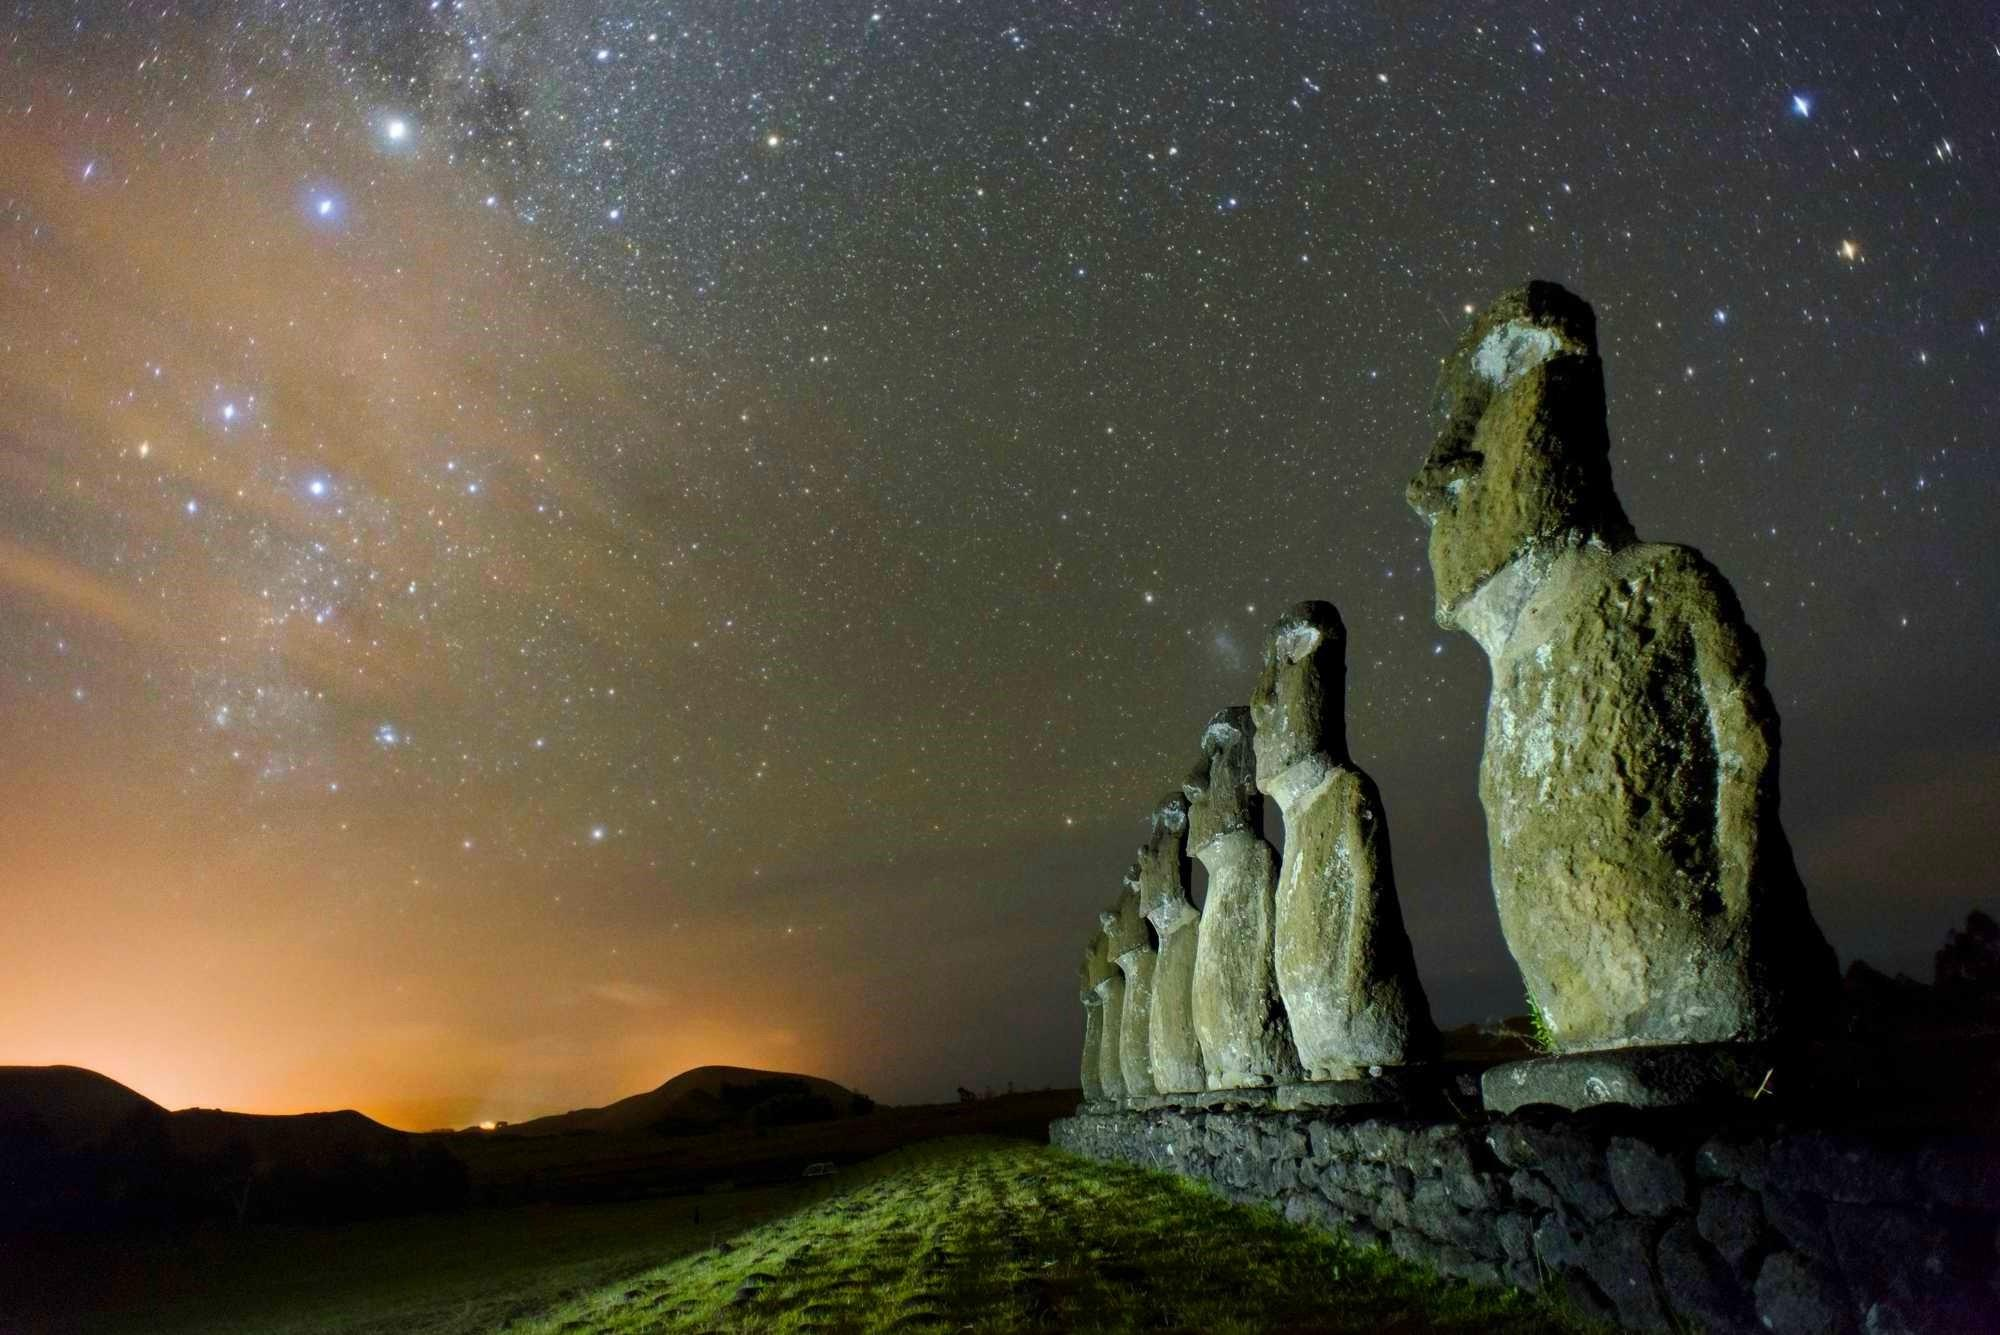 easter island chile starry night statue moai stone monuments nature